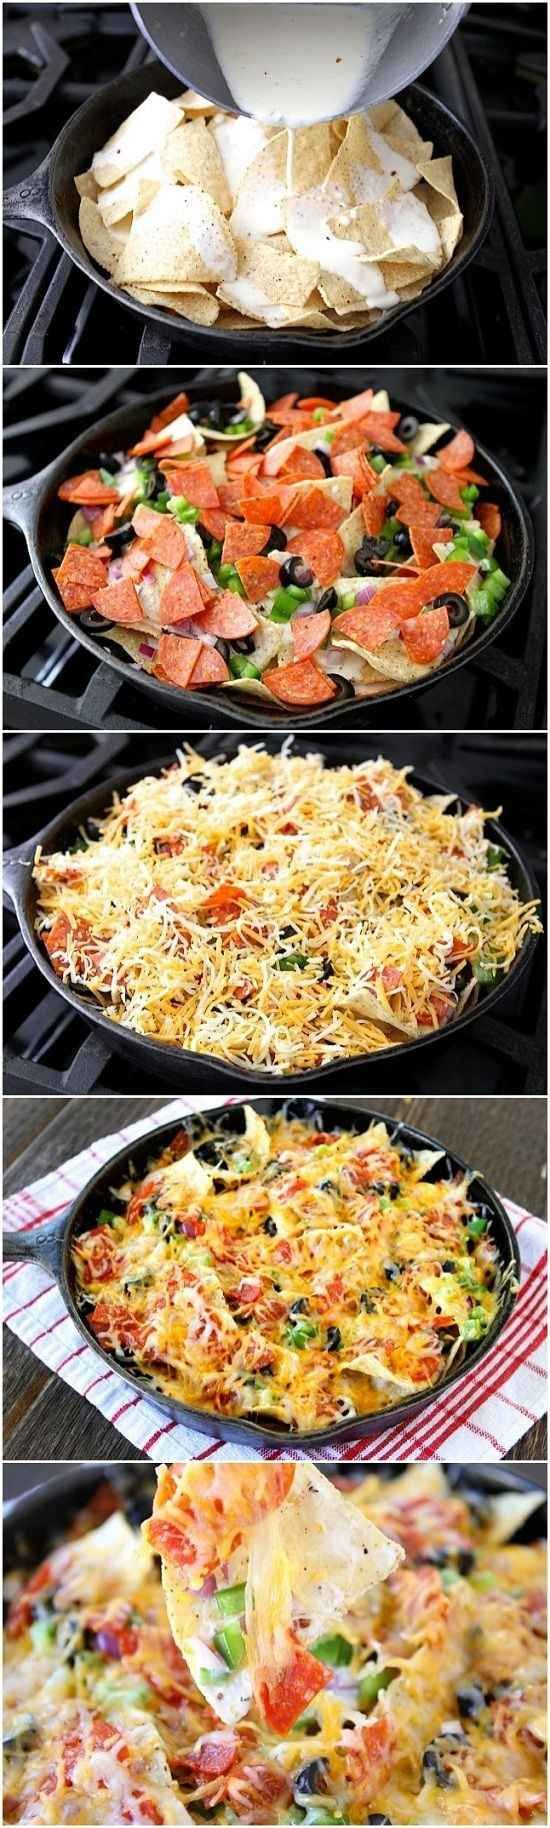 Pizza Nachos for camping. Yum! Trying this in about a week!